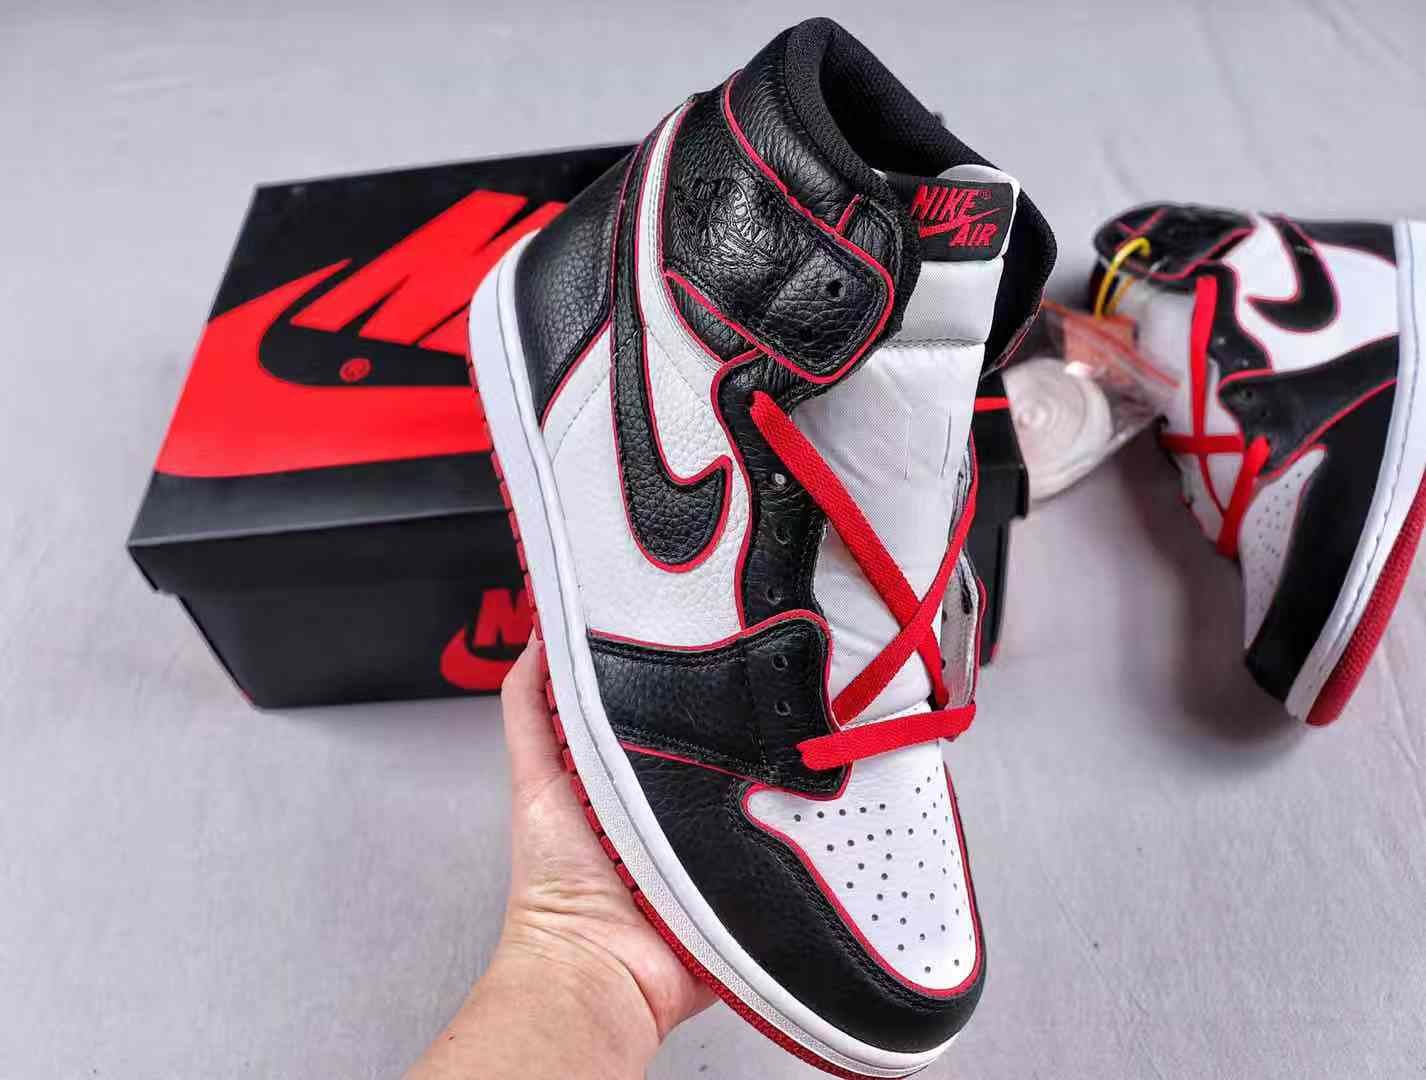 Air Jordan 1 Who Said Man Was Not Meant To Fly 555088-062 To Buy